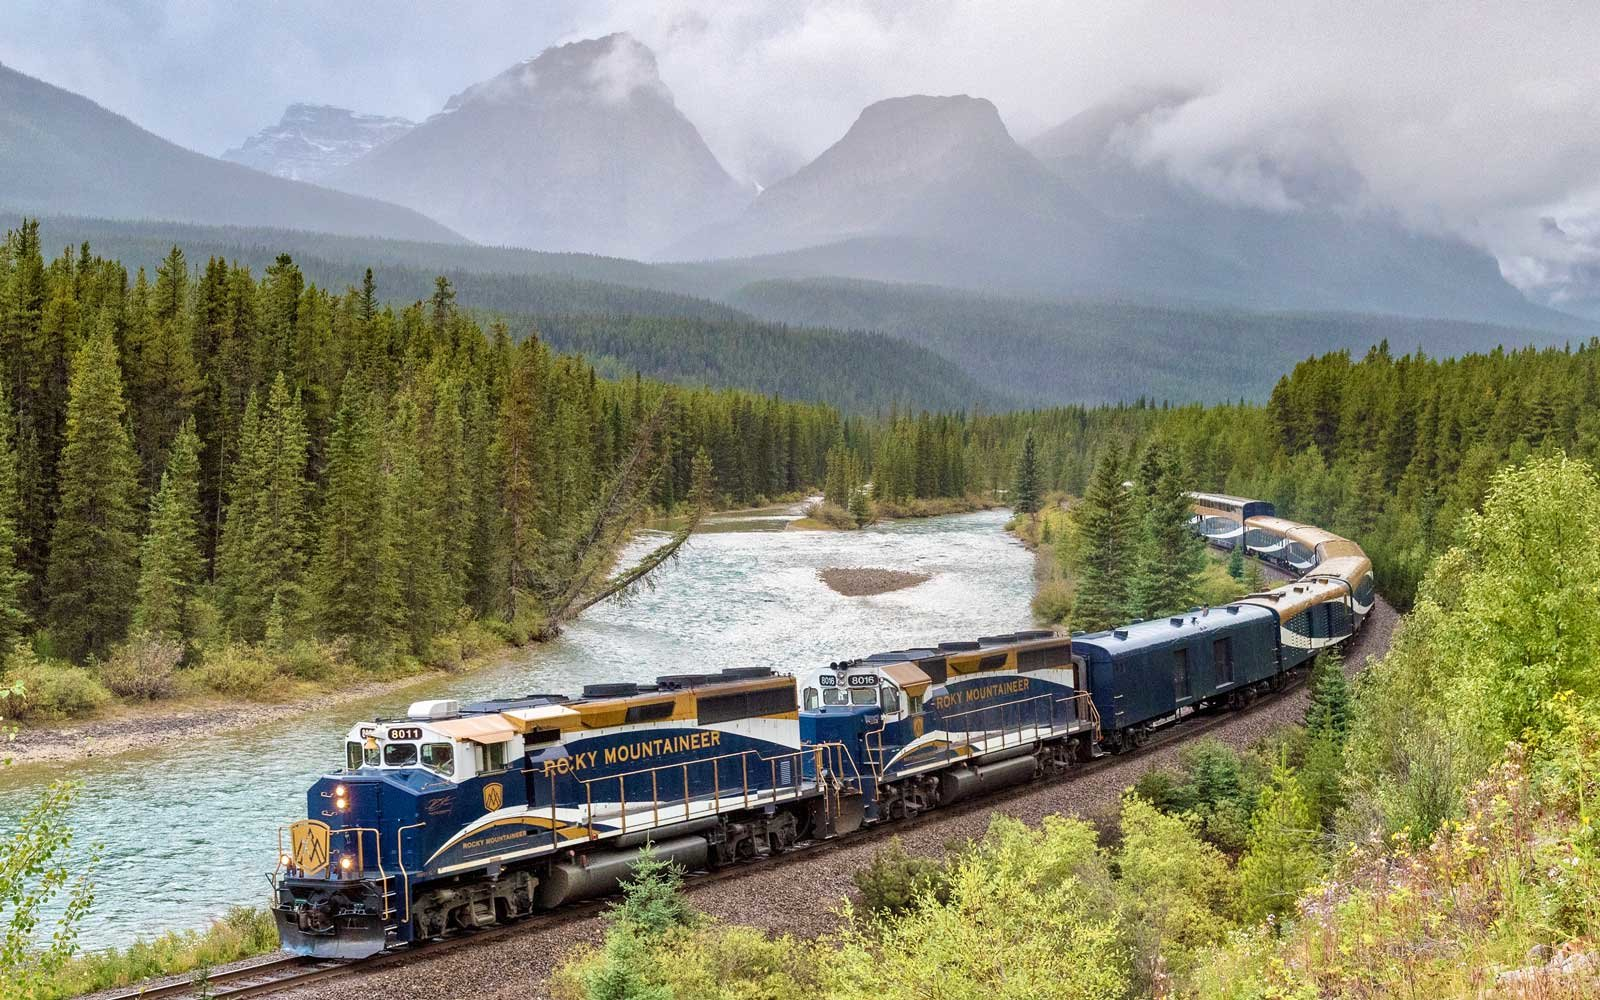 View of the Rocky Mountaineer train on Morant's Curve in Banff National Park, Lake Louise, Alberta, Canada